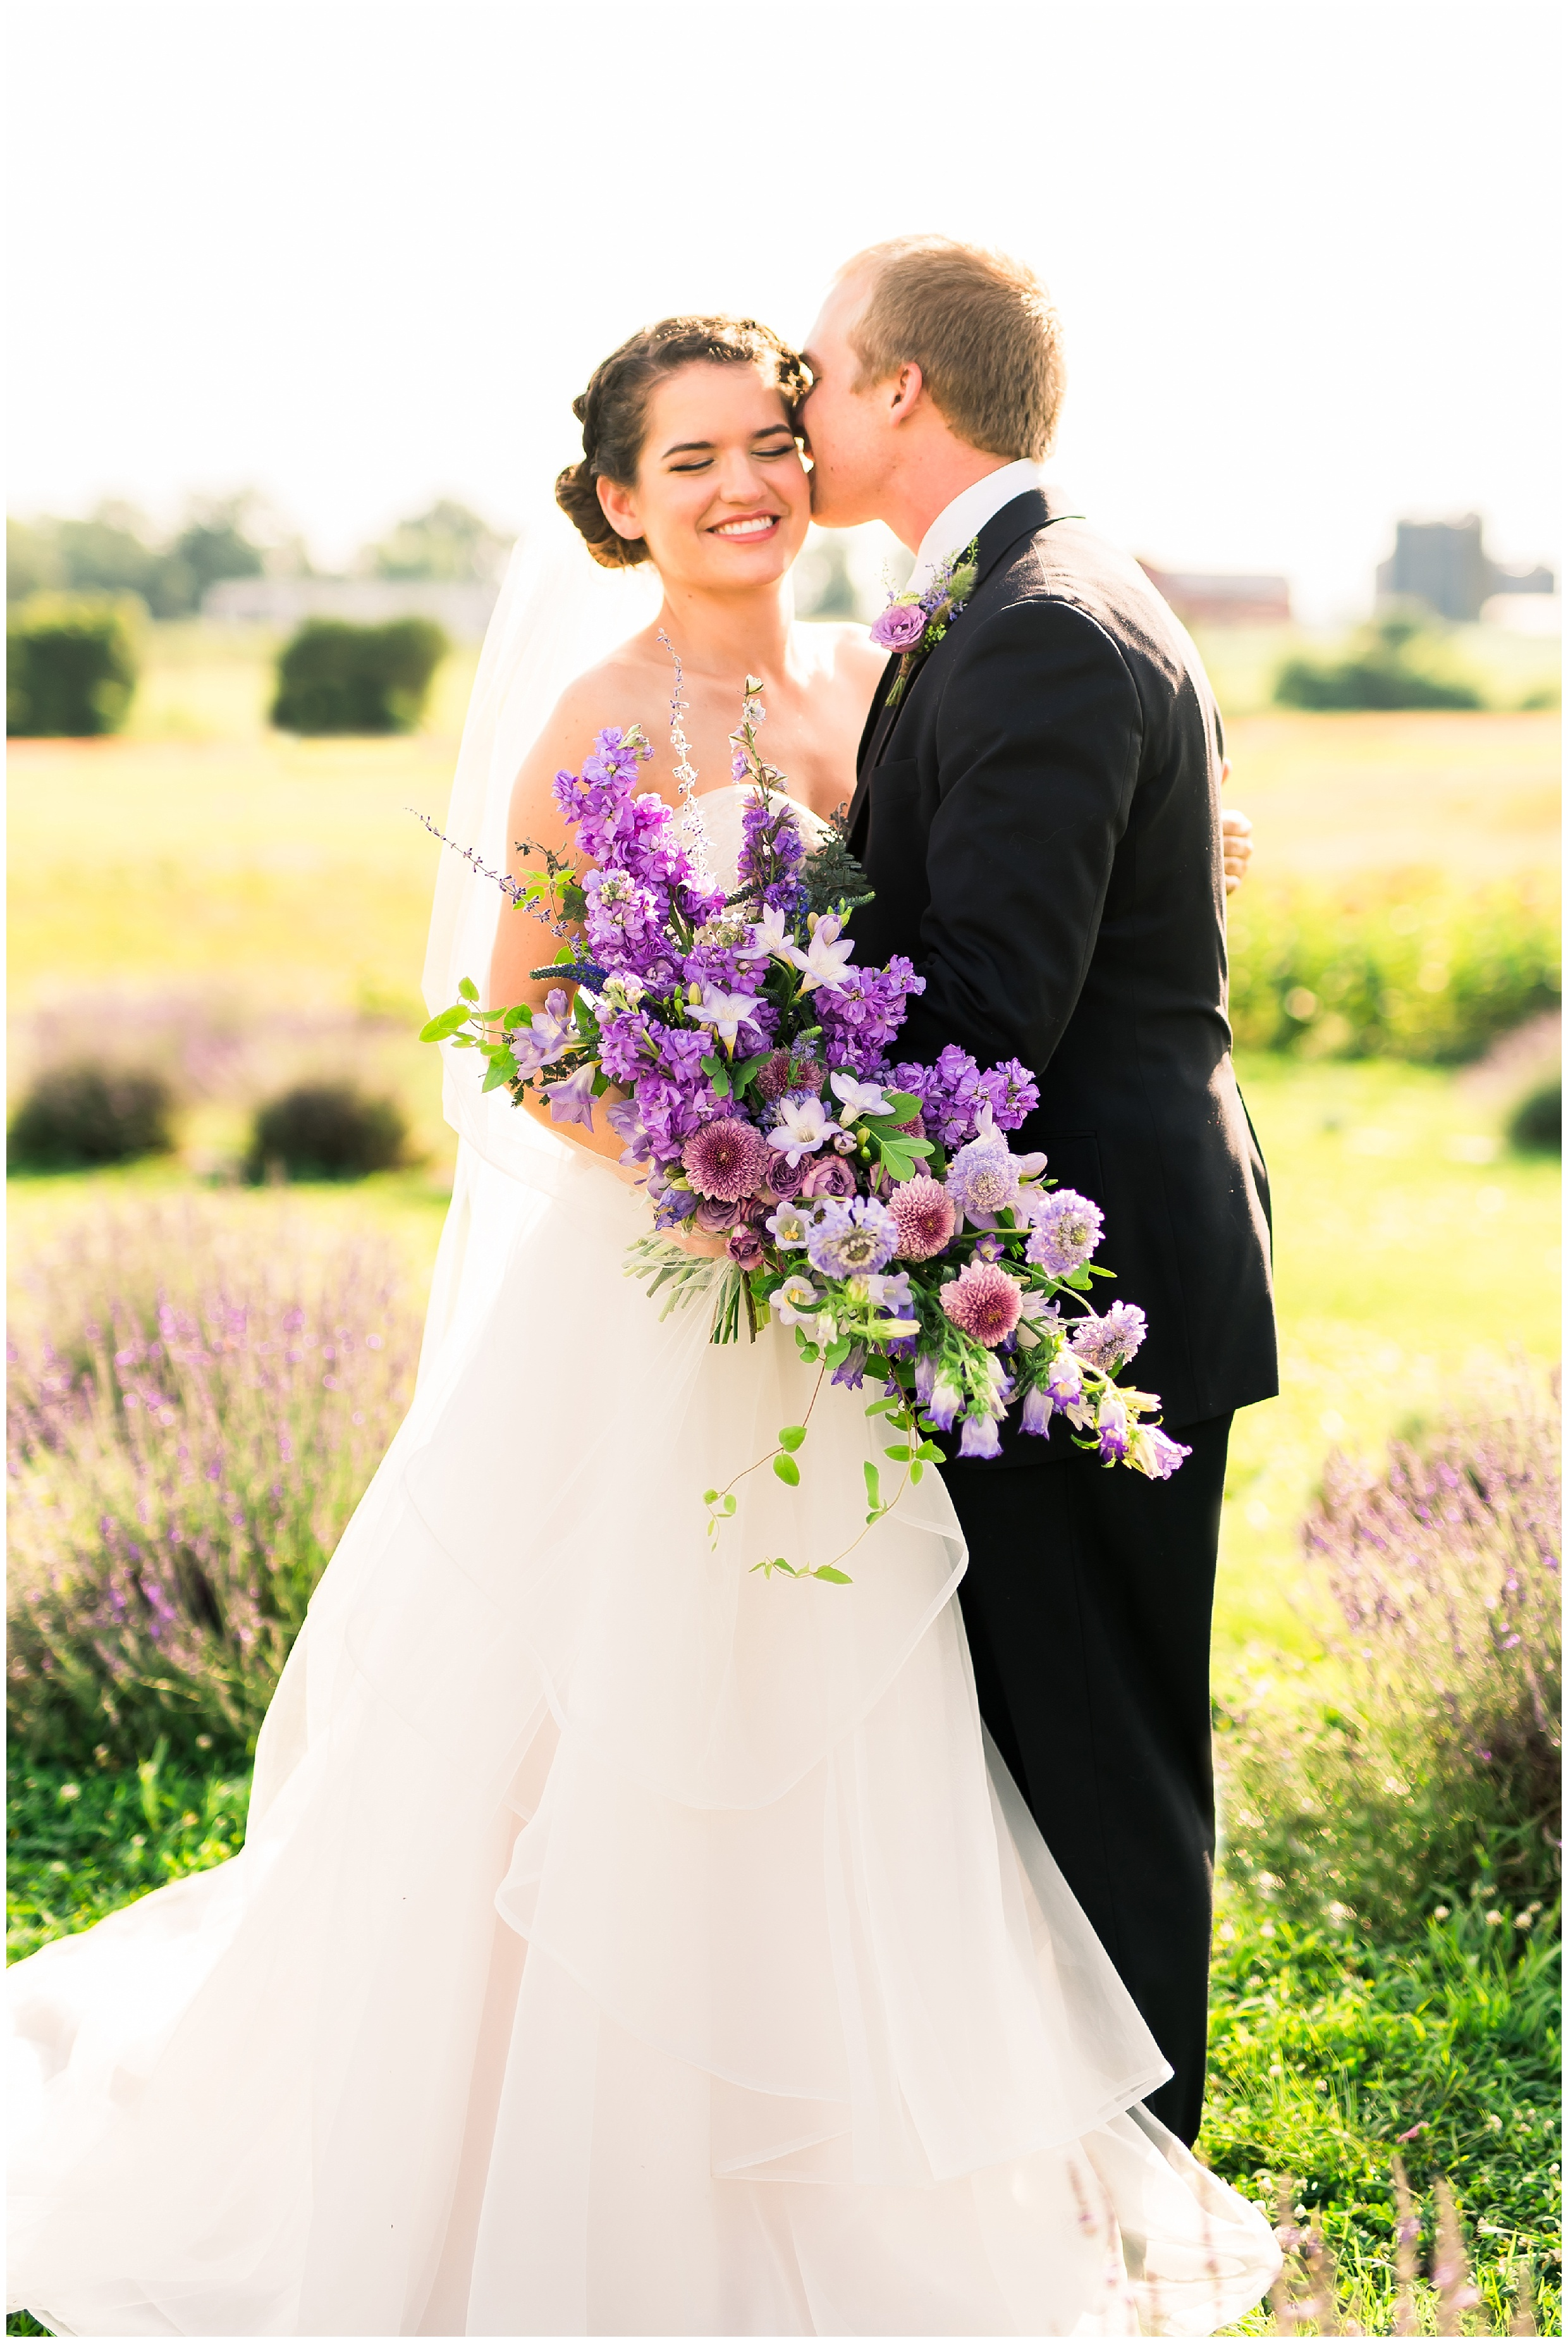 LavenderWeddingInspiration_WeddingChicks_MaddyWilliamsPhotography_0339.jpg